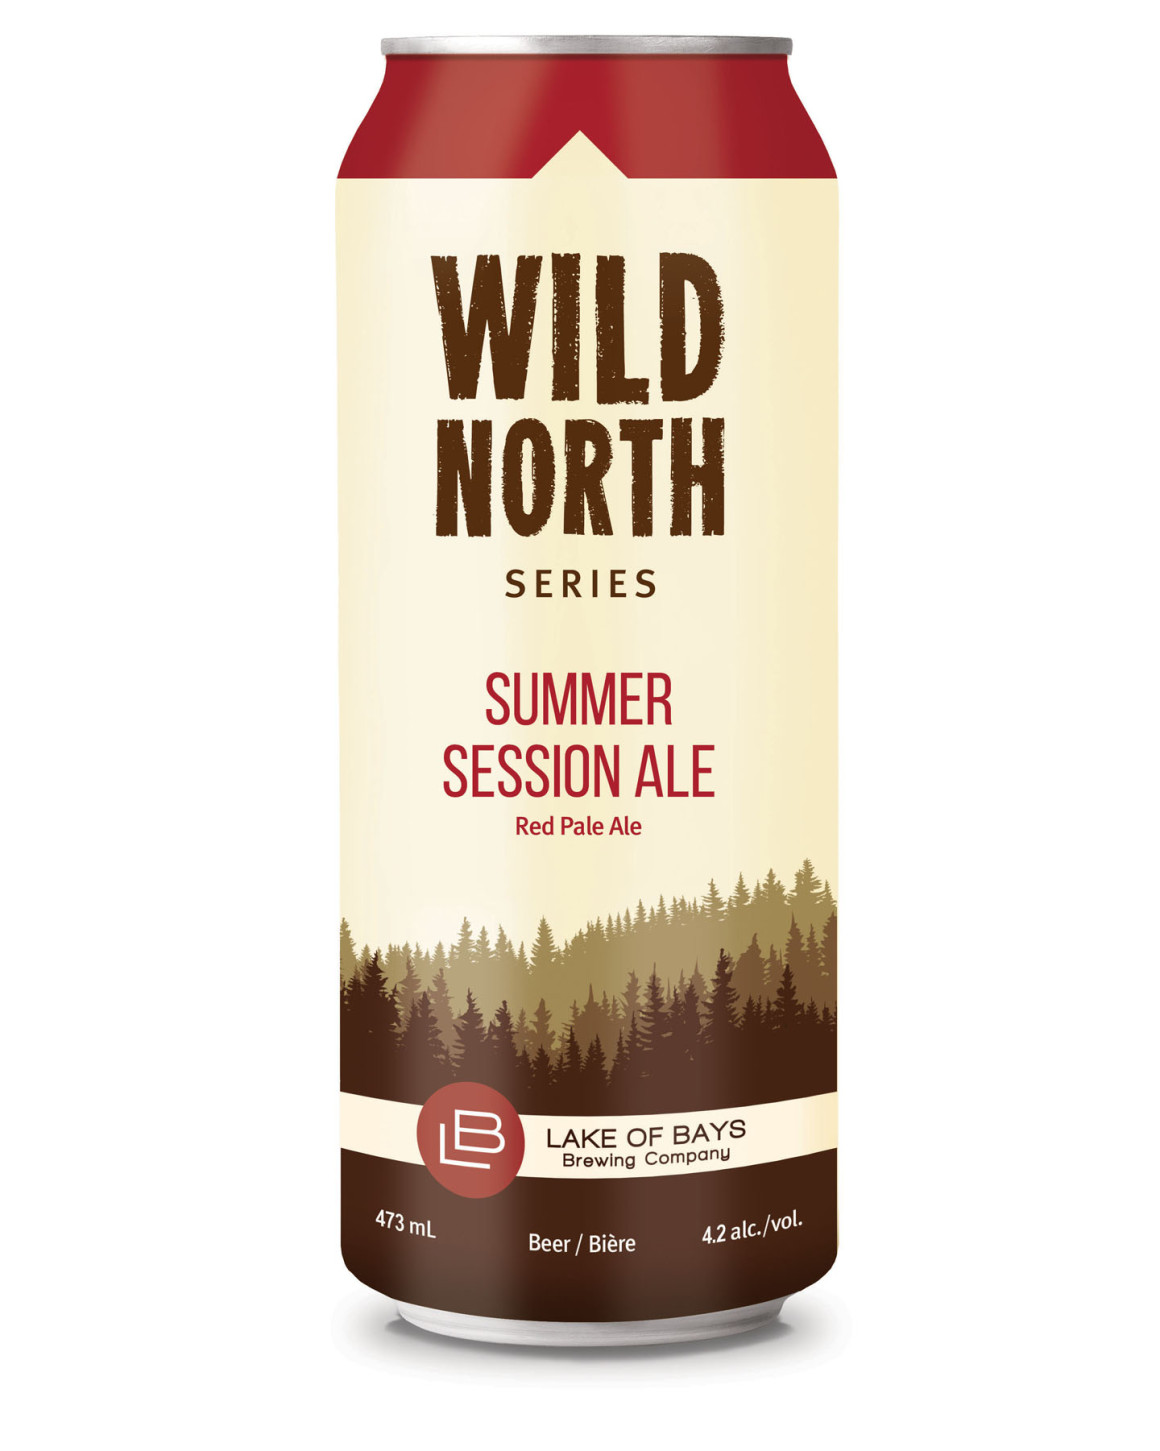 Lake of Bays Wild North package design – Luke Despatie and The Design Firm